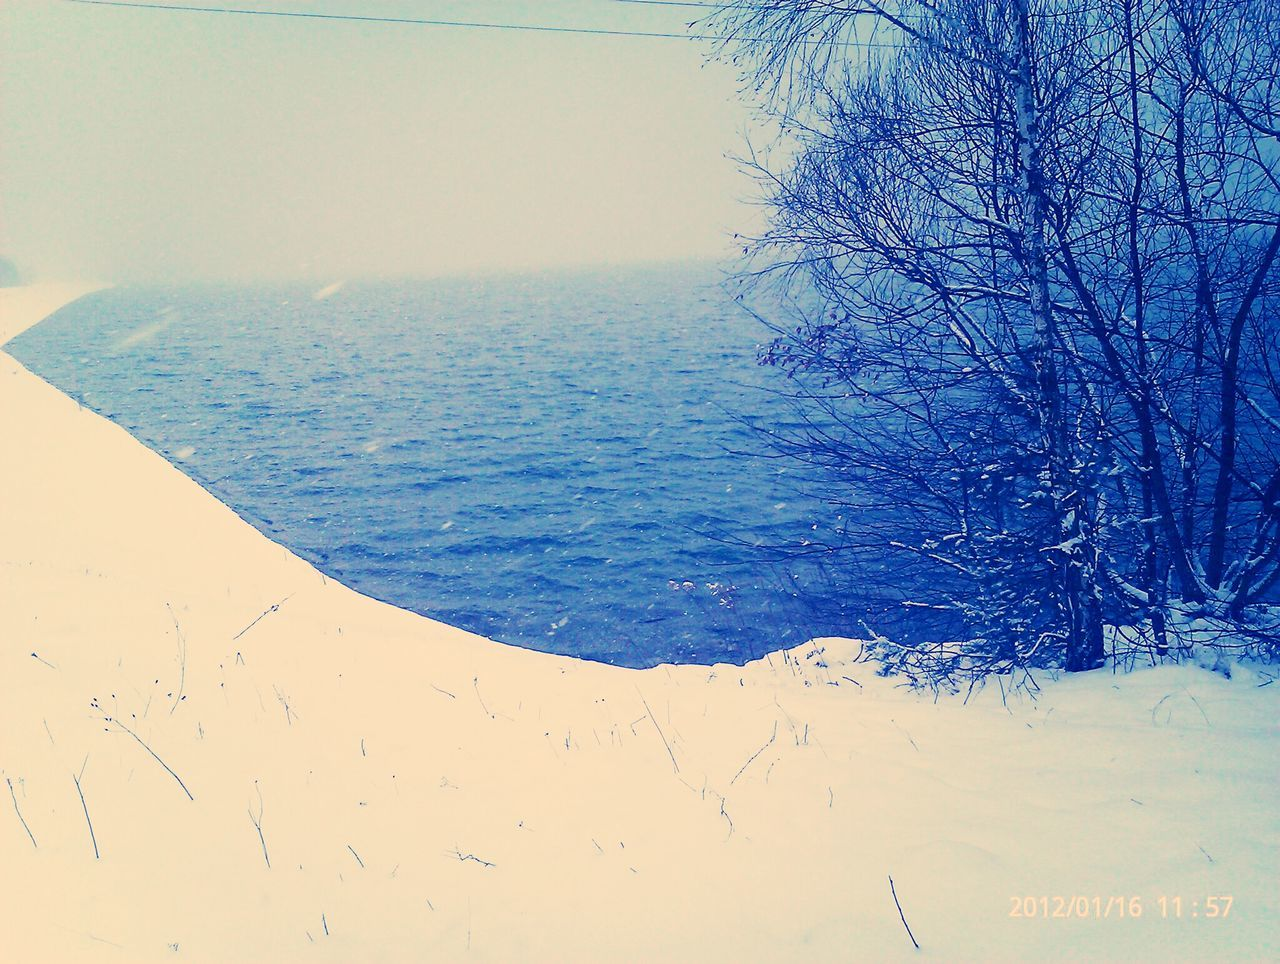 sea, nature, tranquility, water, beauty in nature, tranquil scene, scenics, horizon over water, no people, day, outdoors, cold temperature, winter, snow, sky, close-up